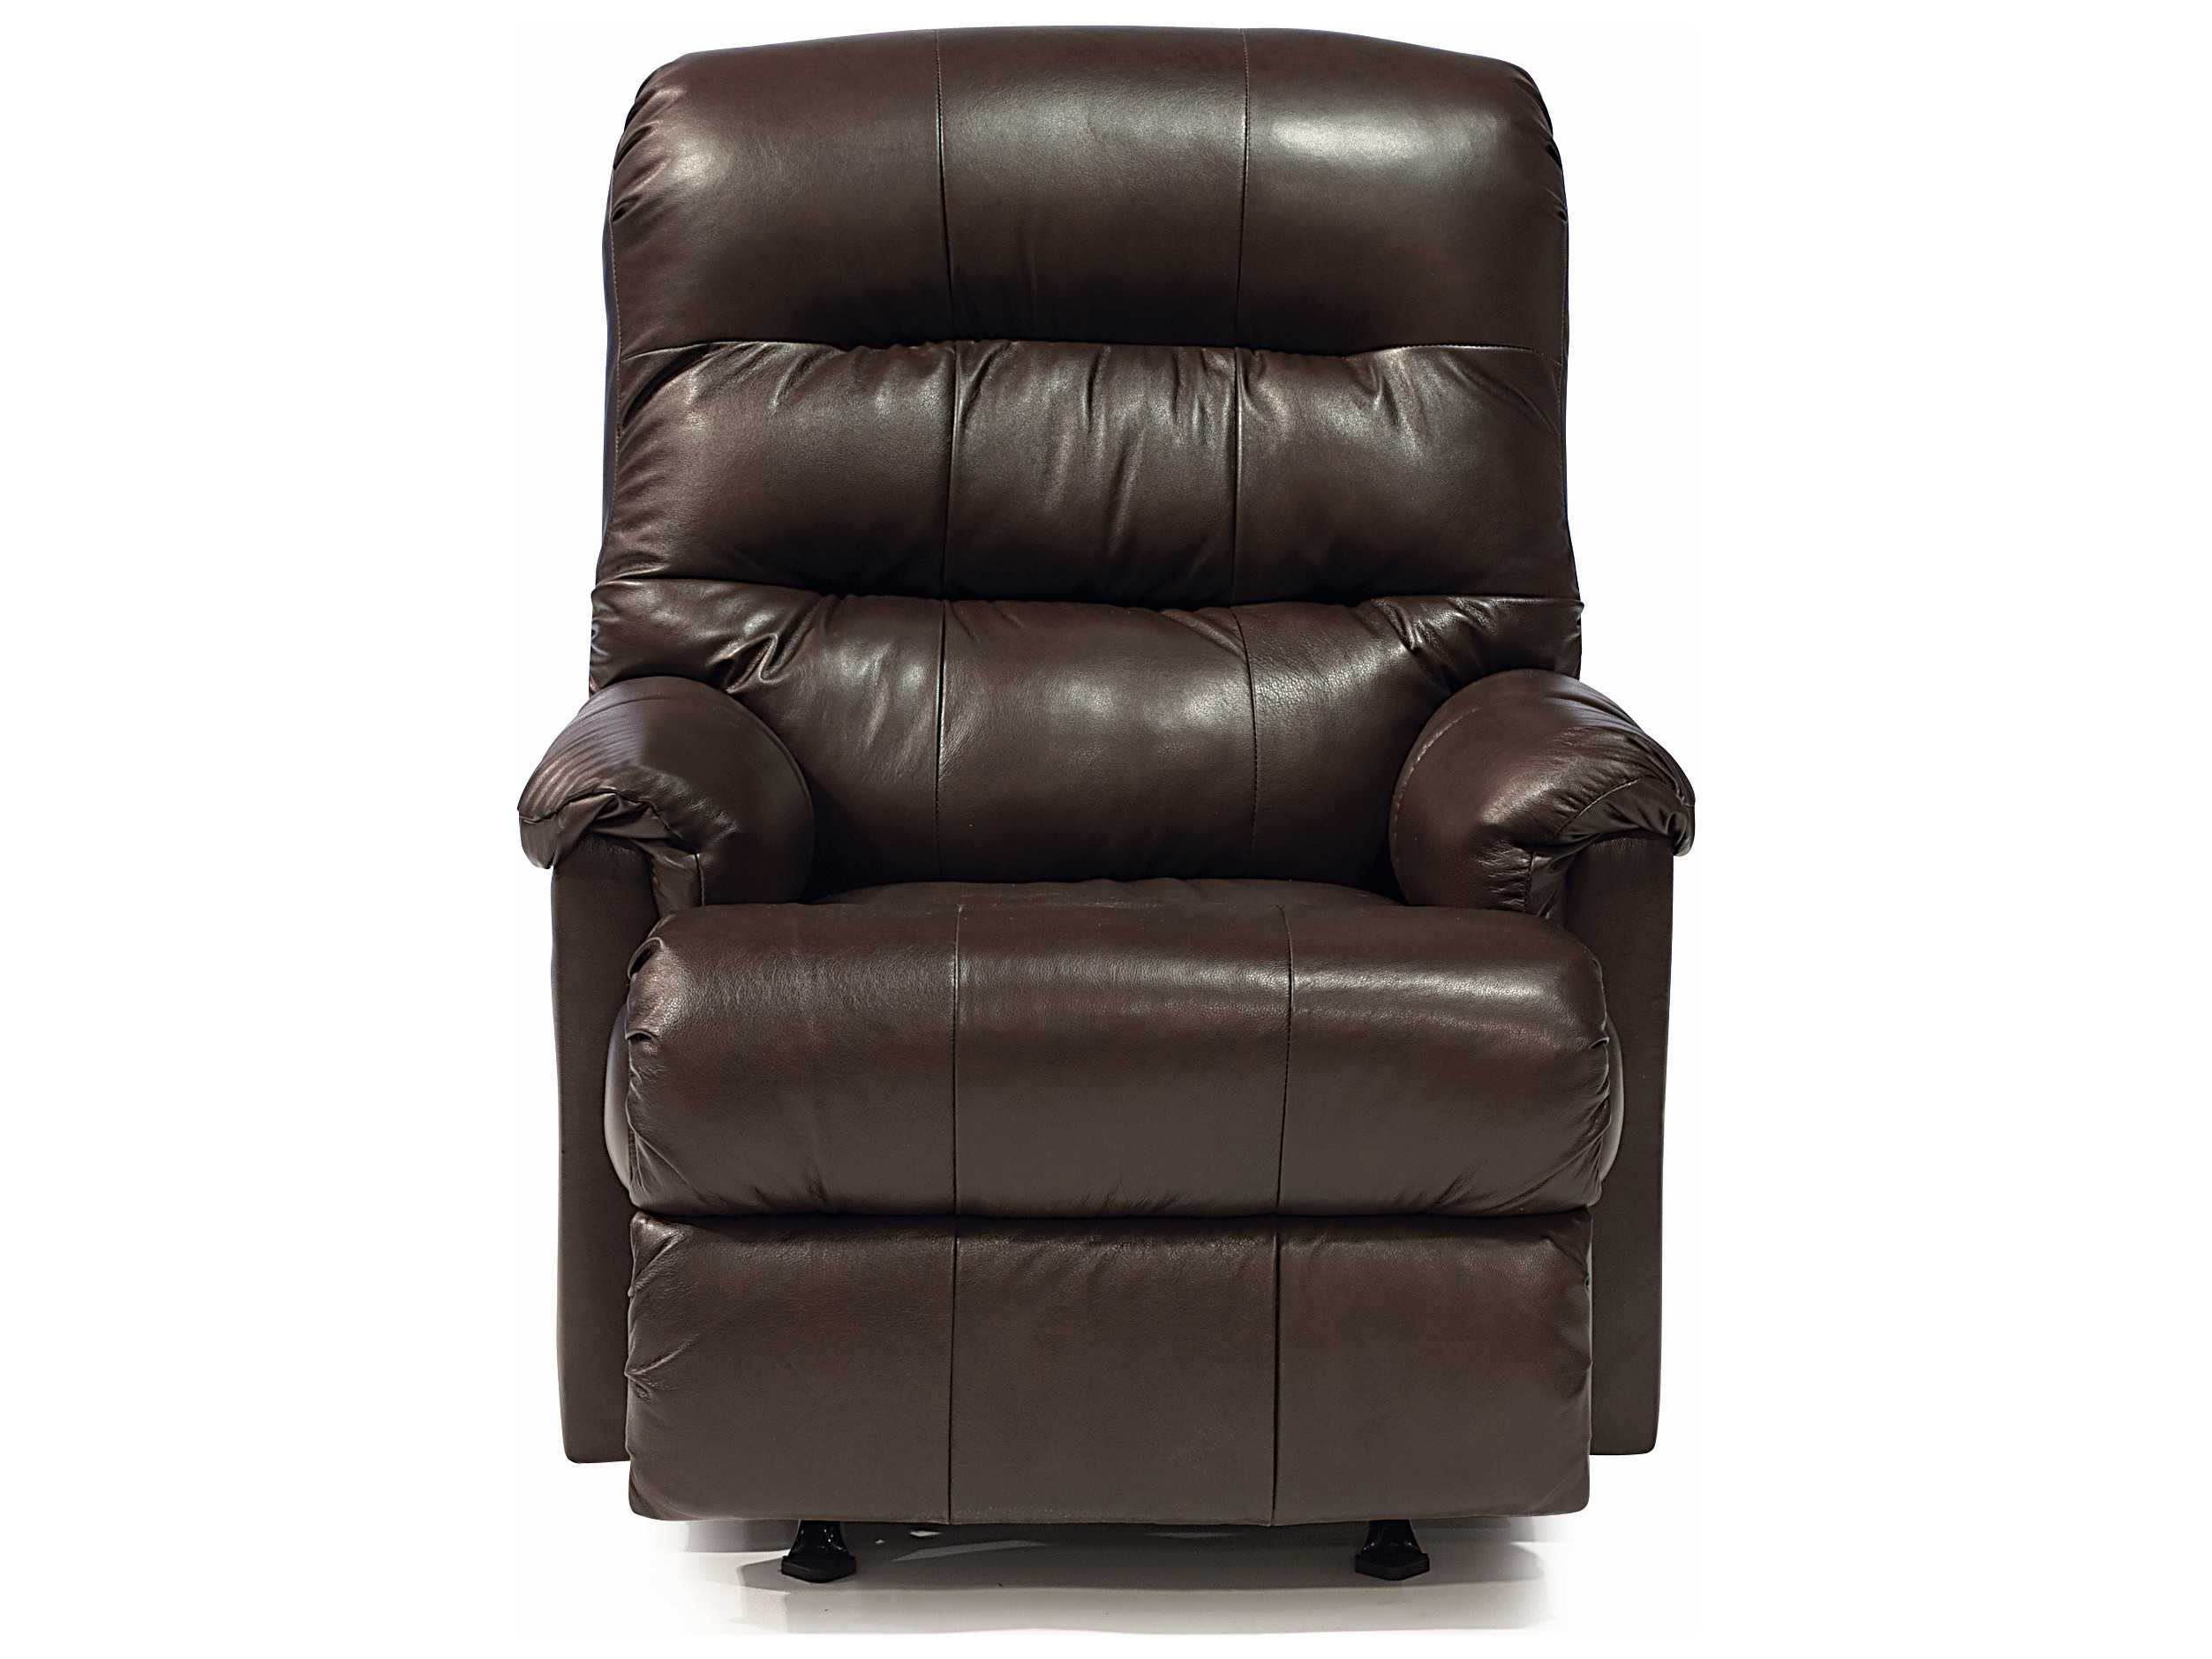 Swivel Rocker Recliner Chair Palliser Columbus Swivel Rocker Recliner Chair